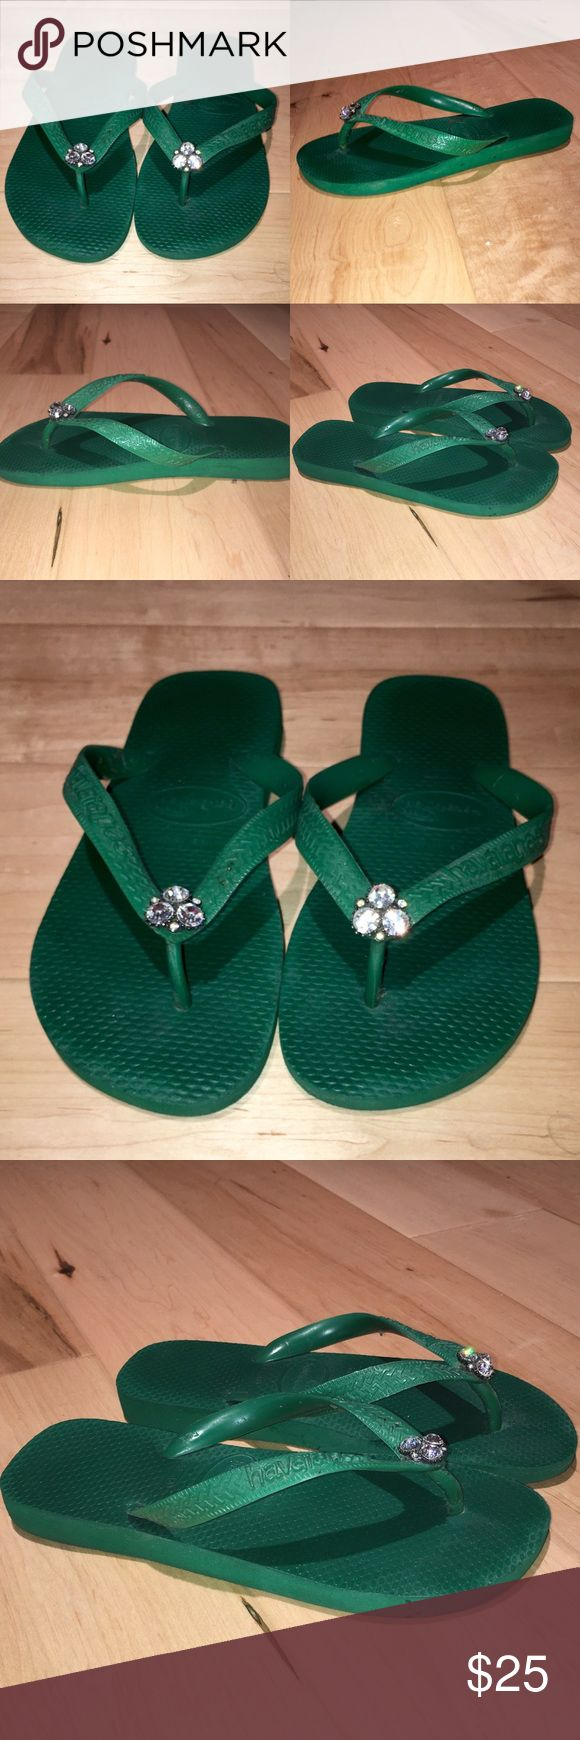 Havaianas Green Blinged Flip Flops Havaianas Green Flip Flops with Diamond Center 35-36 Euro Havaianas Shoes Sandals